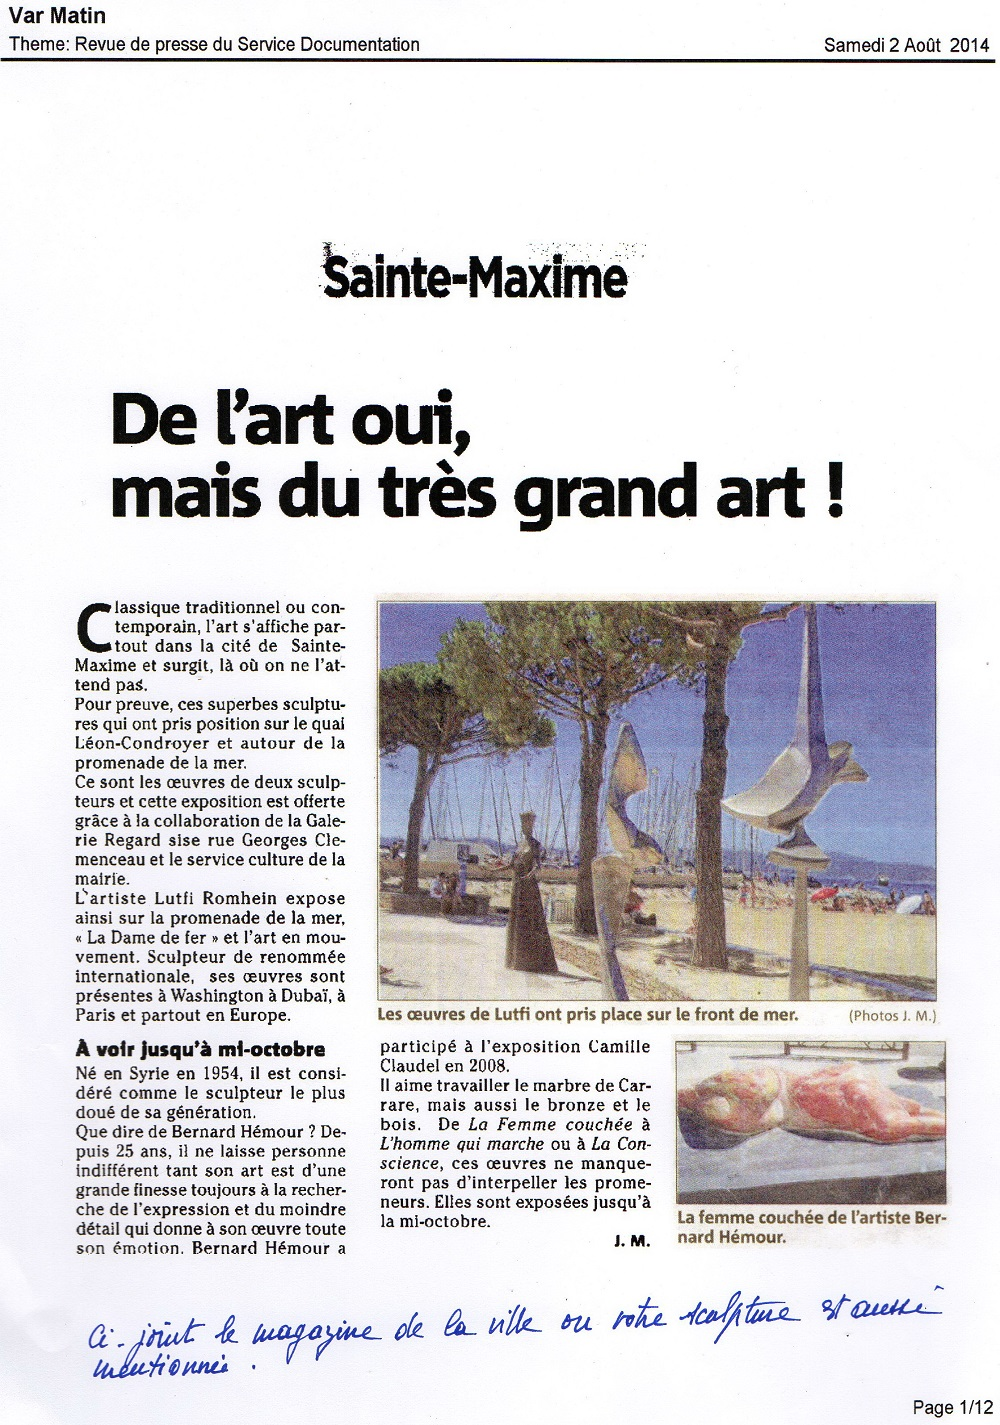 Article de presse Sainte Maxime Var